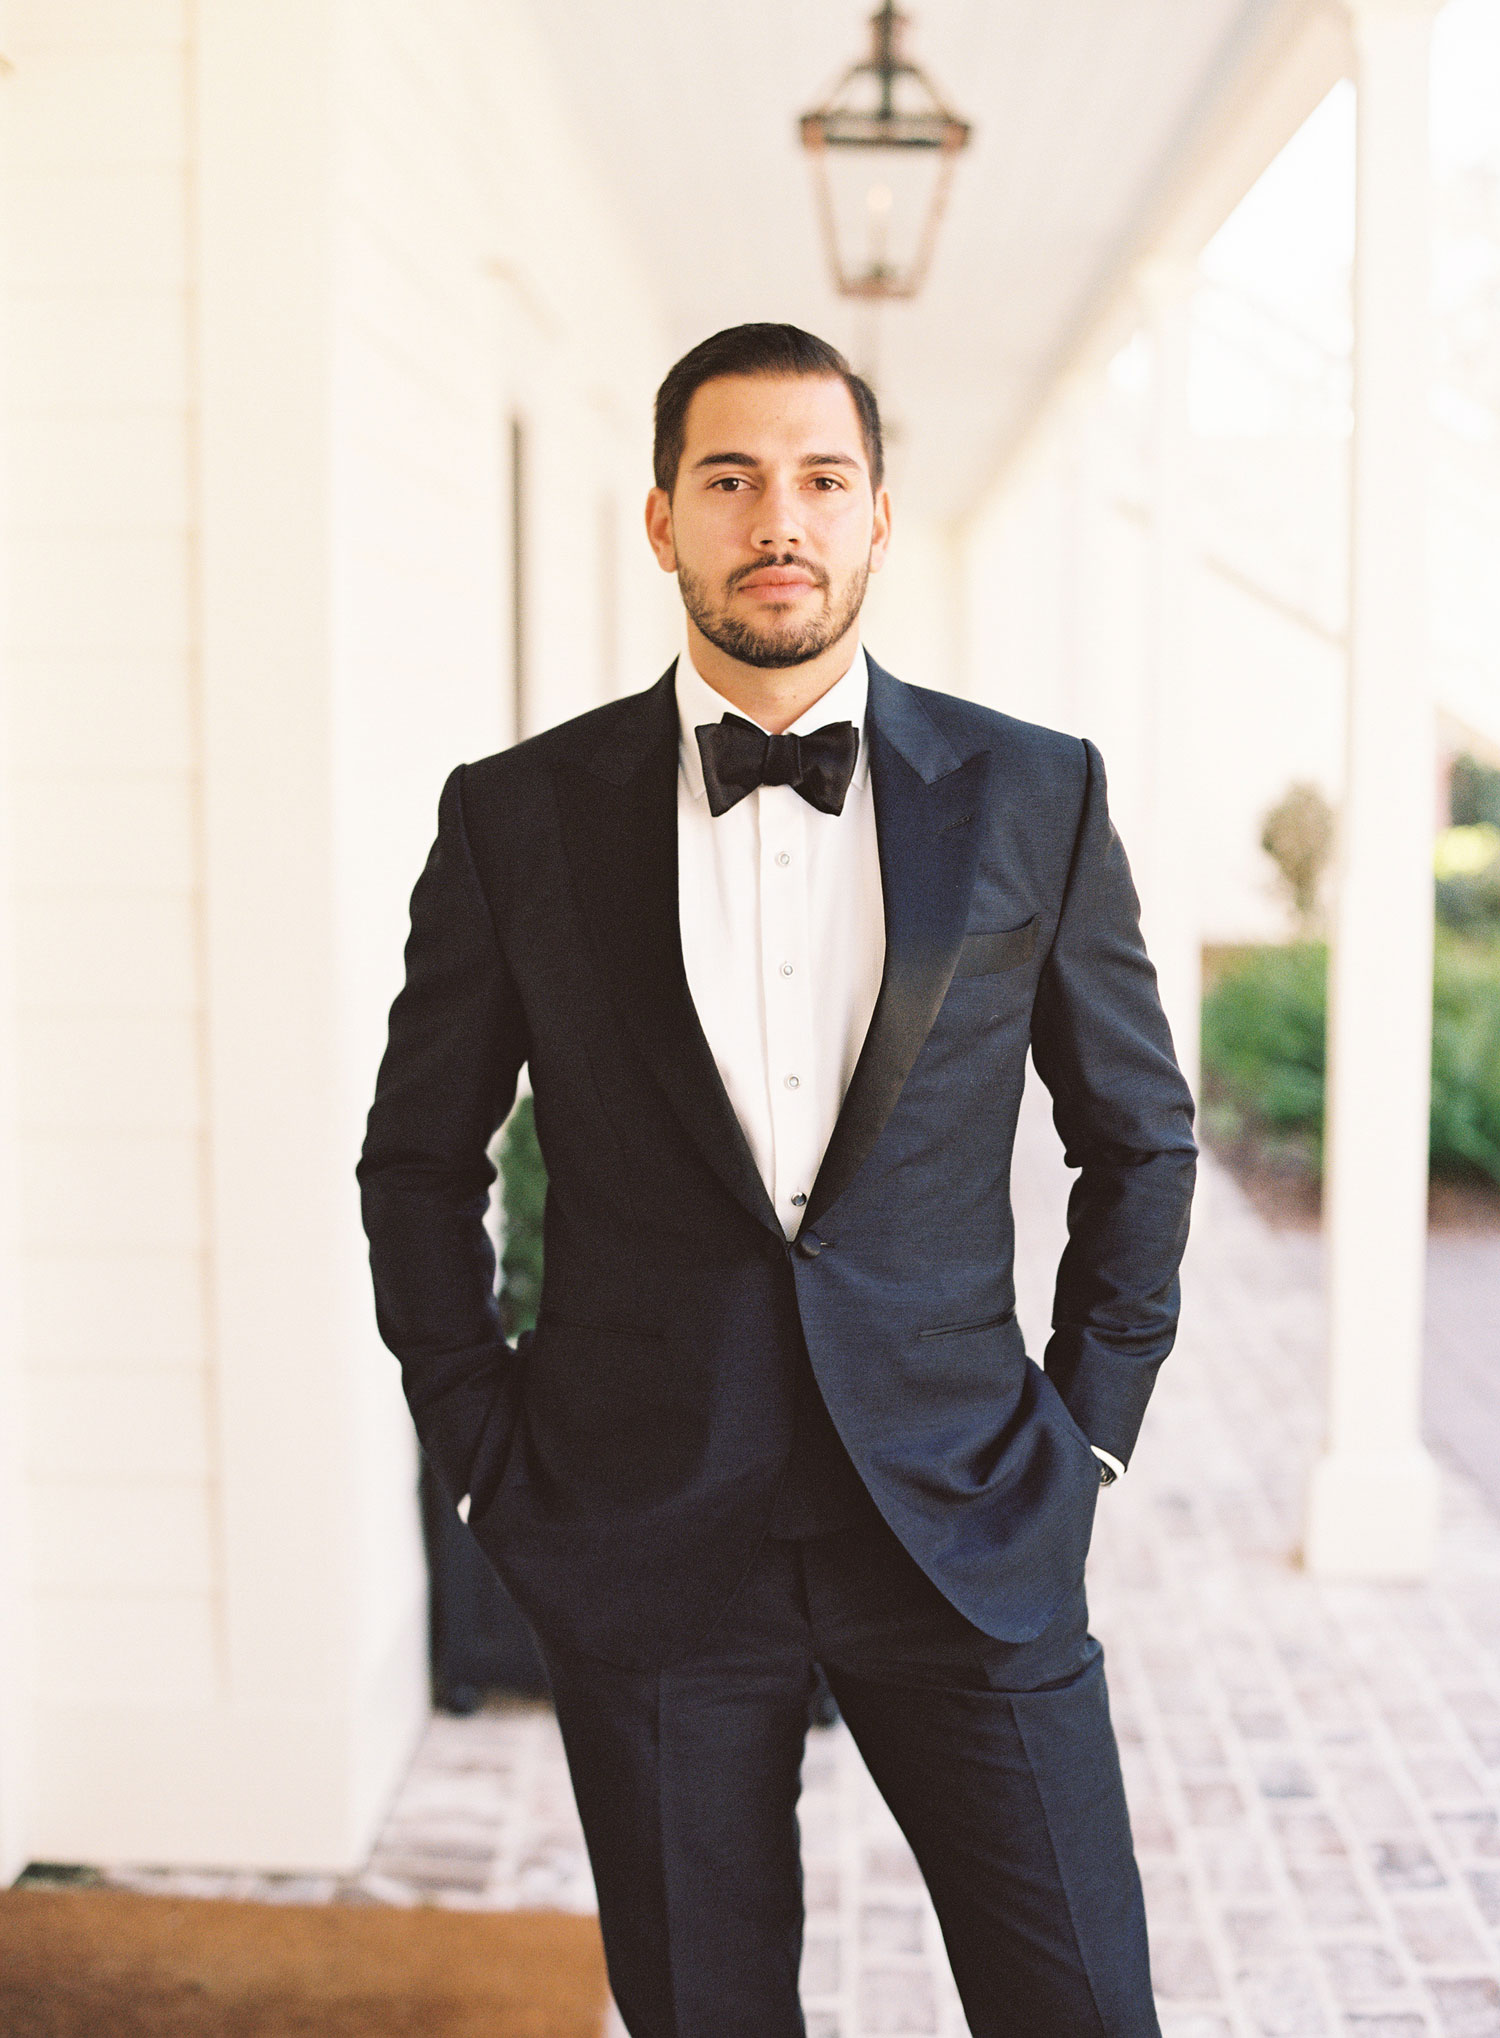 groom in classic suit tuxedo with clear buttons wedding style ideas for grooms